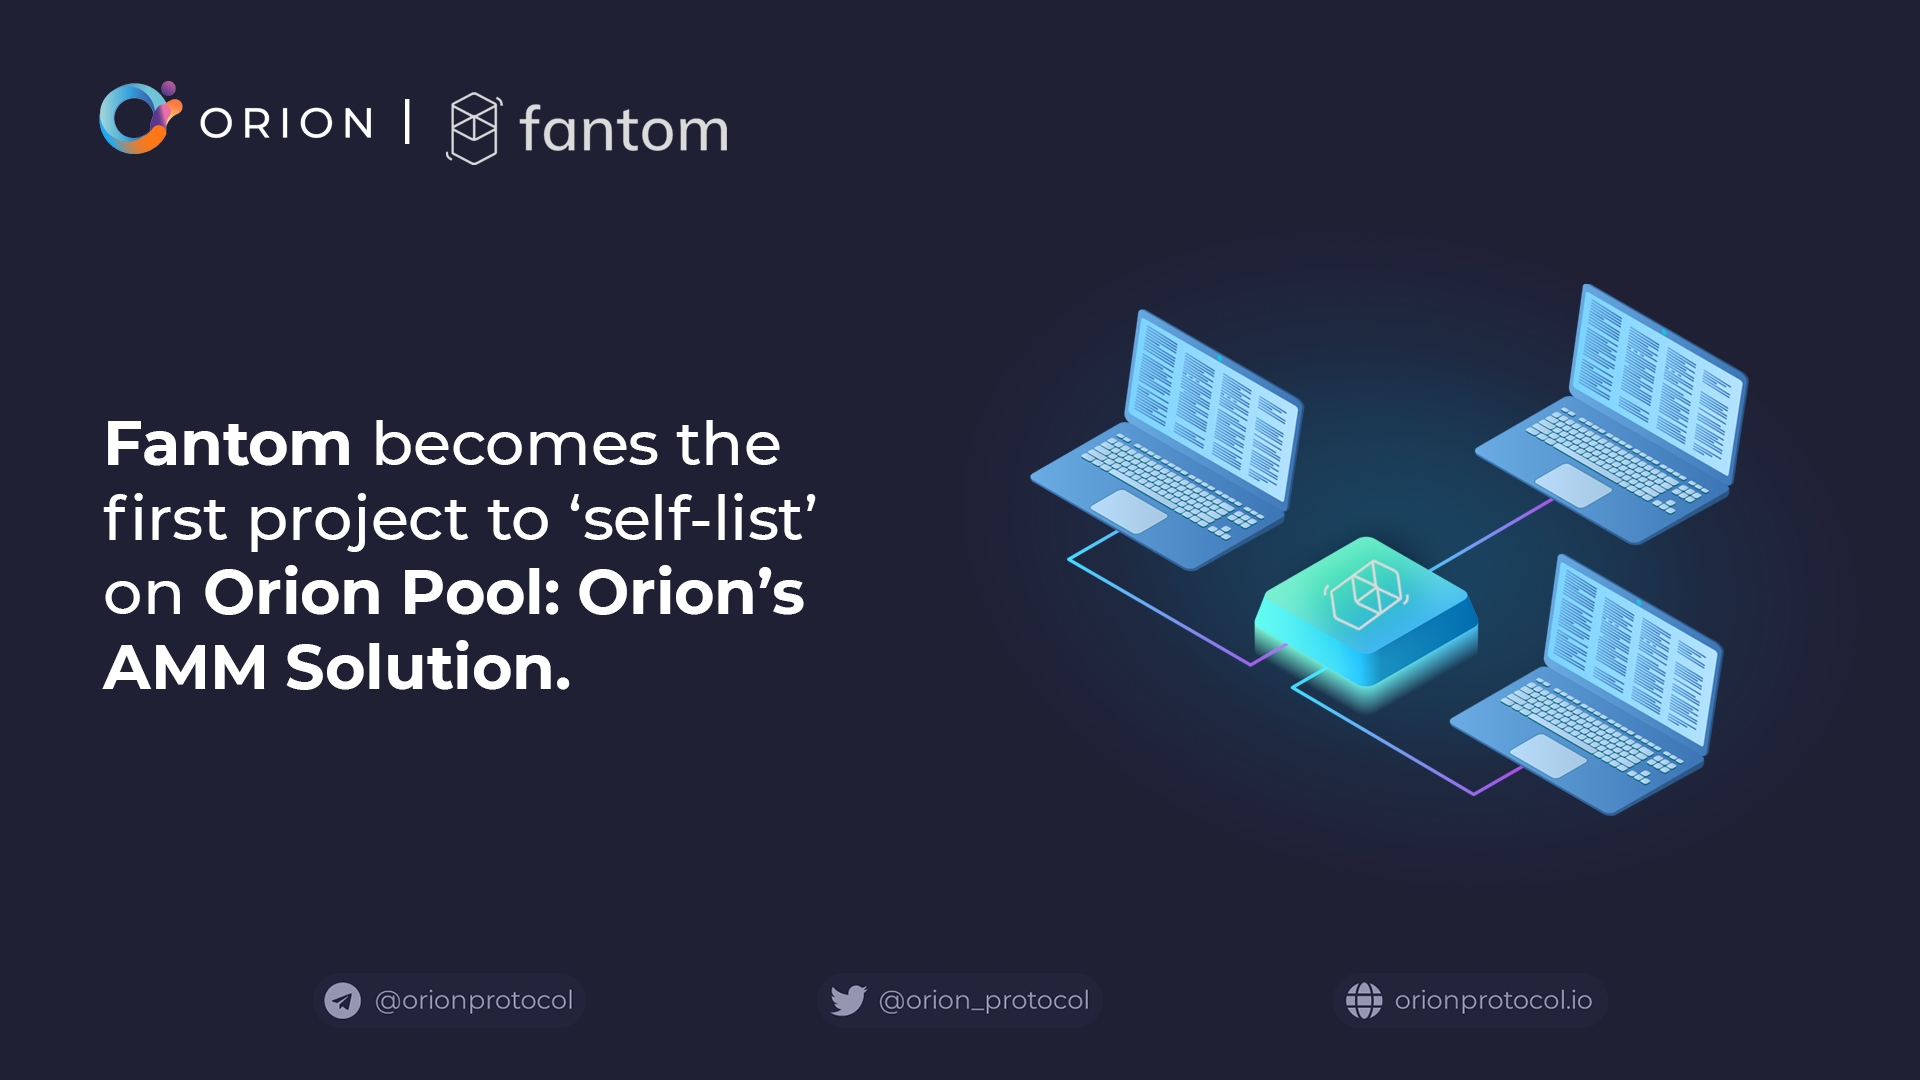 Fantom becomes the first project on Orion Pool